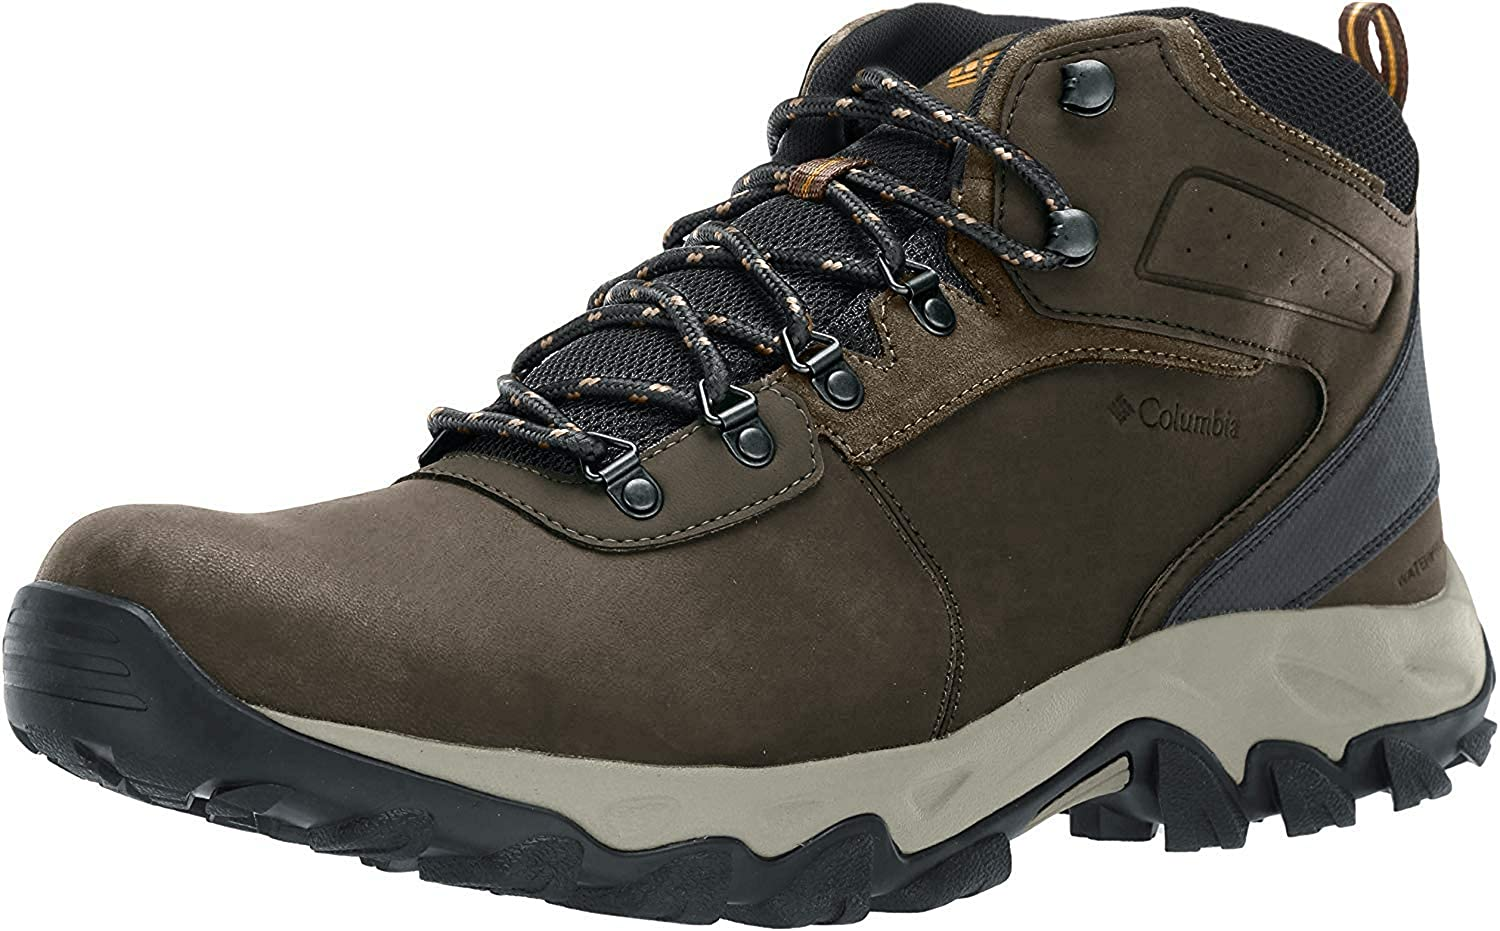 Columbia Men's Newton Ridge Plus II Waterproof Hiking Boot, Breathable, High-Traction Grip